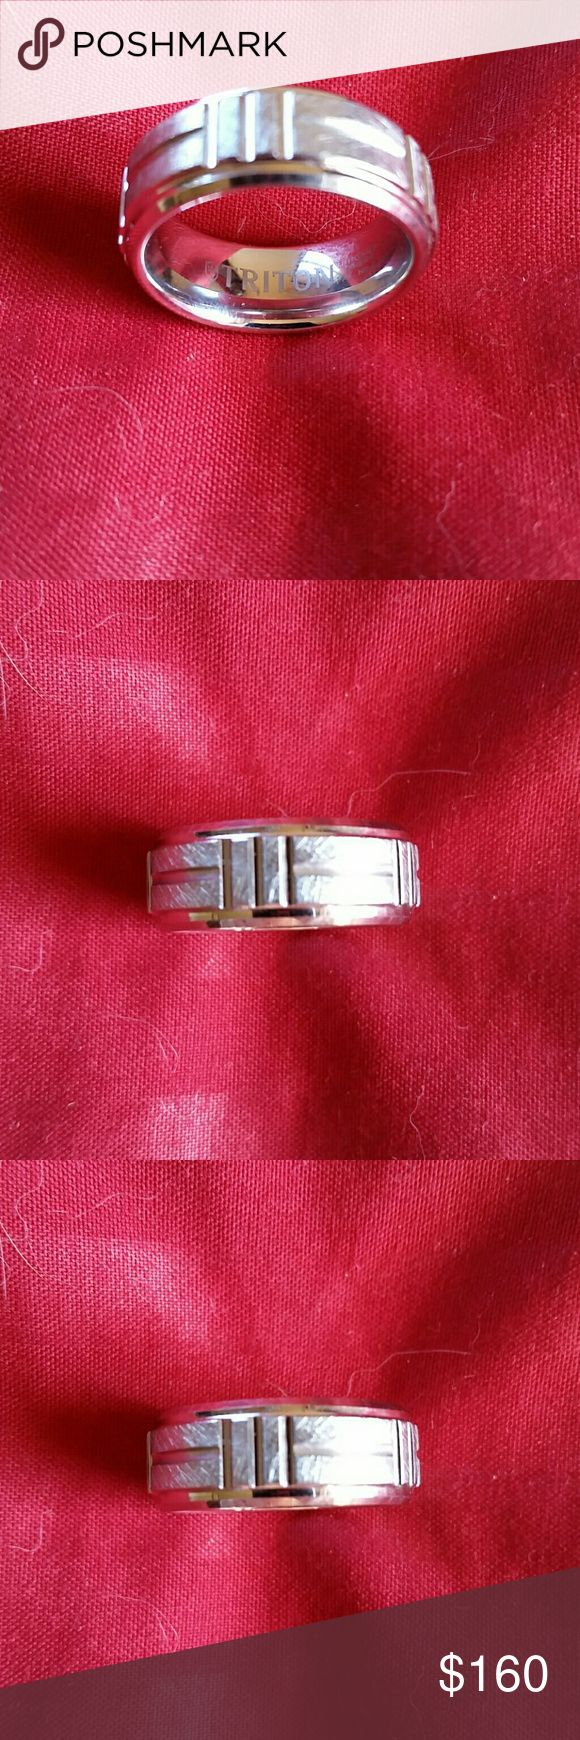 TRITON (Tungsten Carbide Mens Ring) TC 850 Size 9. Tungsten Carbide extemely strong to never scratch or dent. TRITON Accessories Jewelry